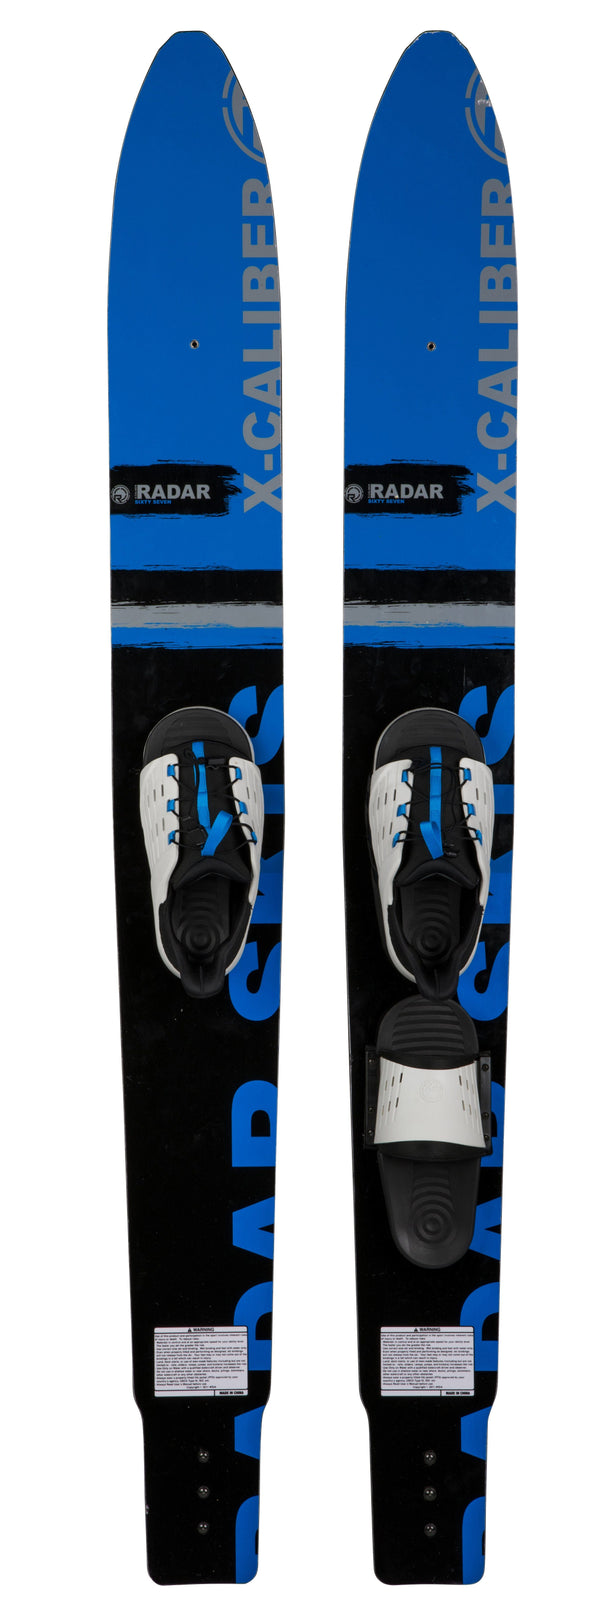 2021 X-Caliber Combo with Cruise Bindings Watersports - Ski - Combos Radar